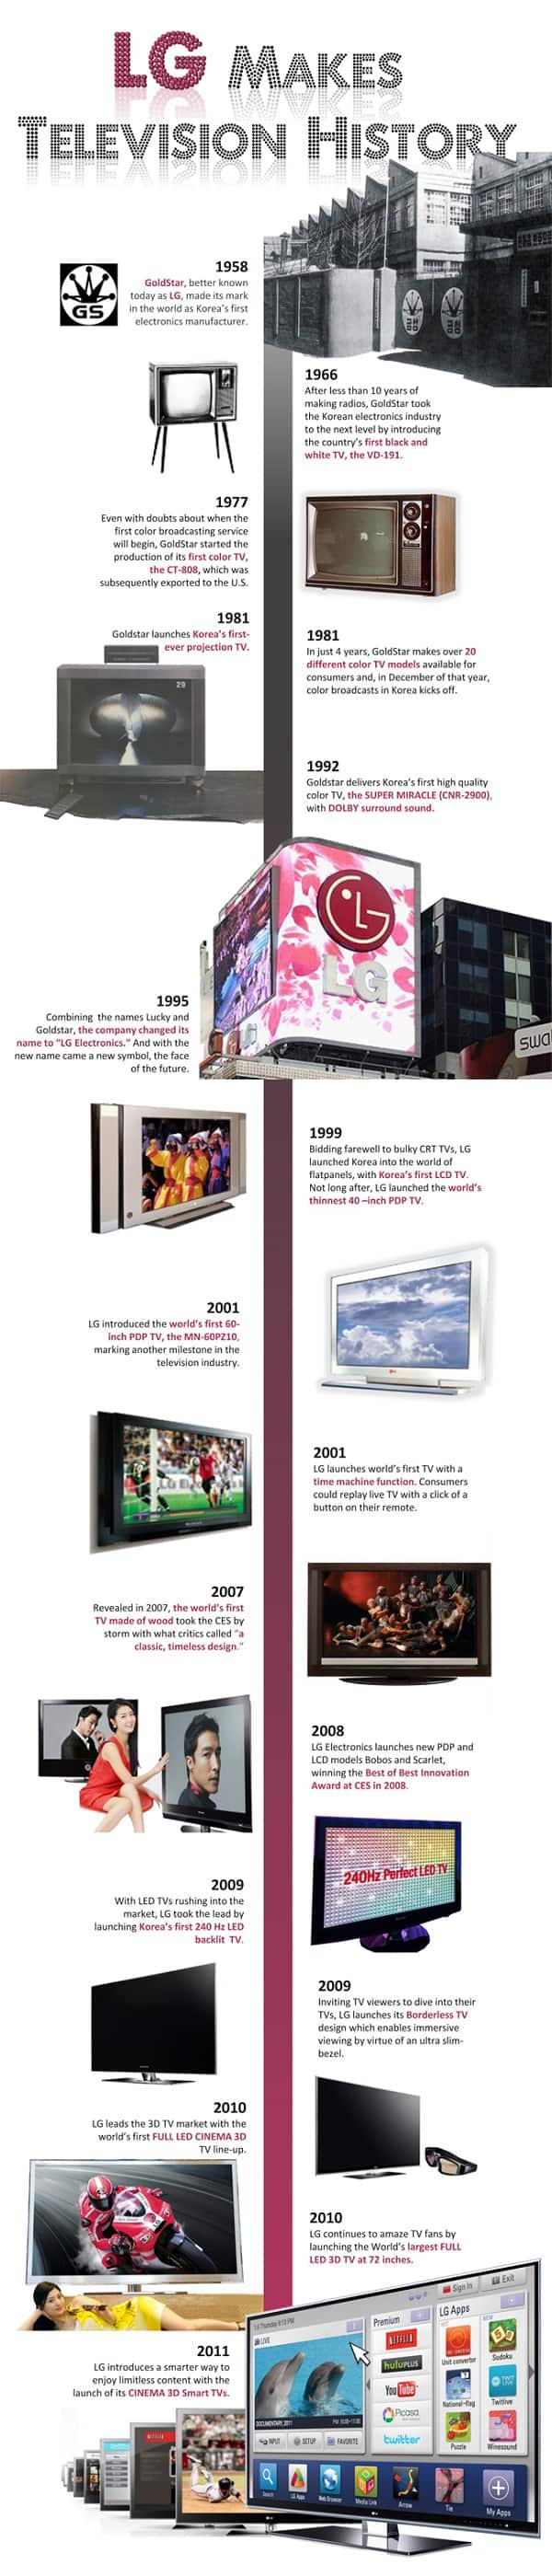 LG-television-history-infographic